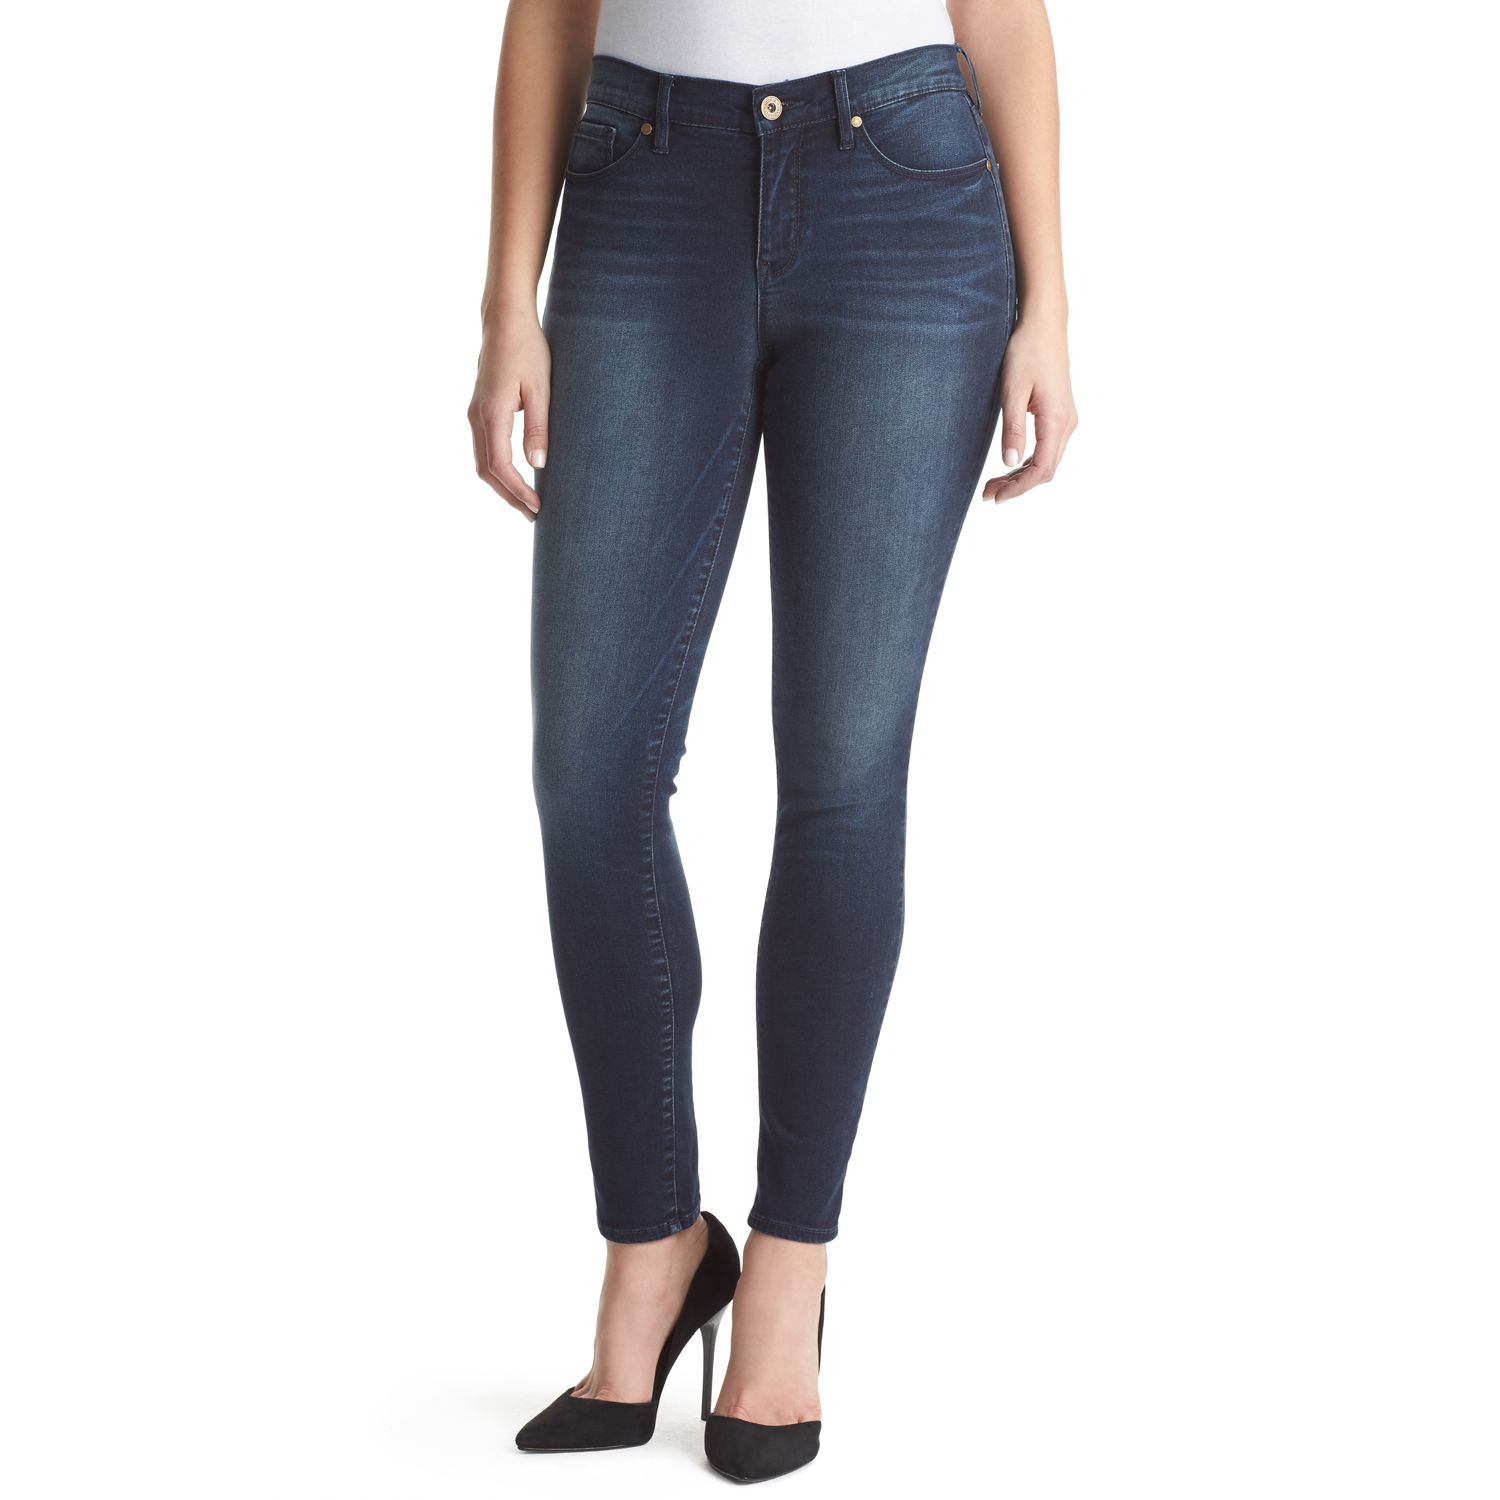 Womens Gloria Vanderbilt Movement Curvy Fit Skinny Jeans